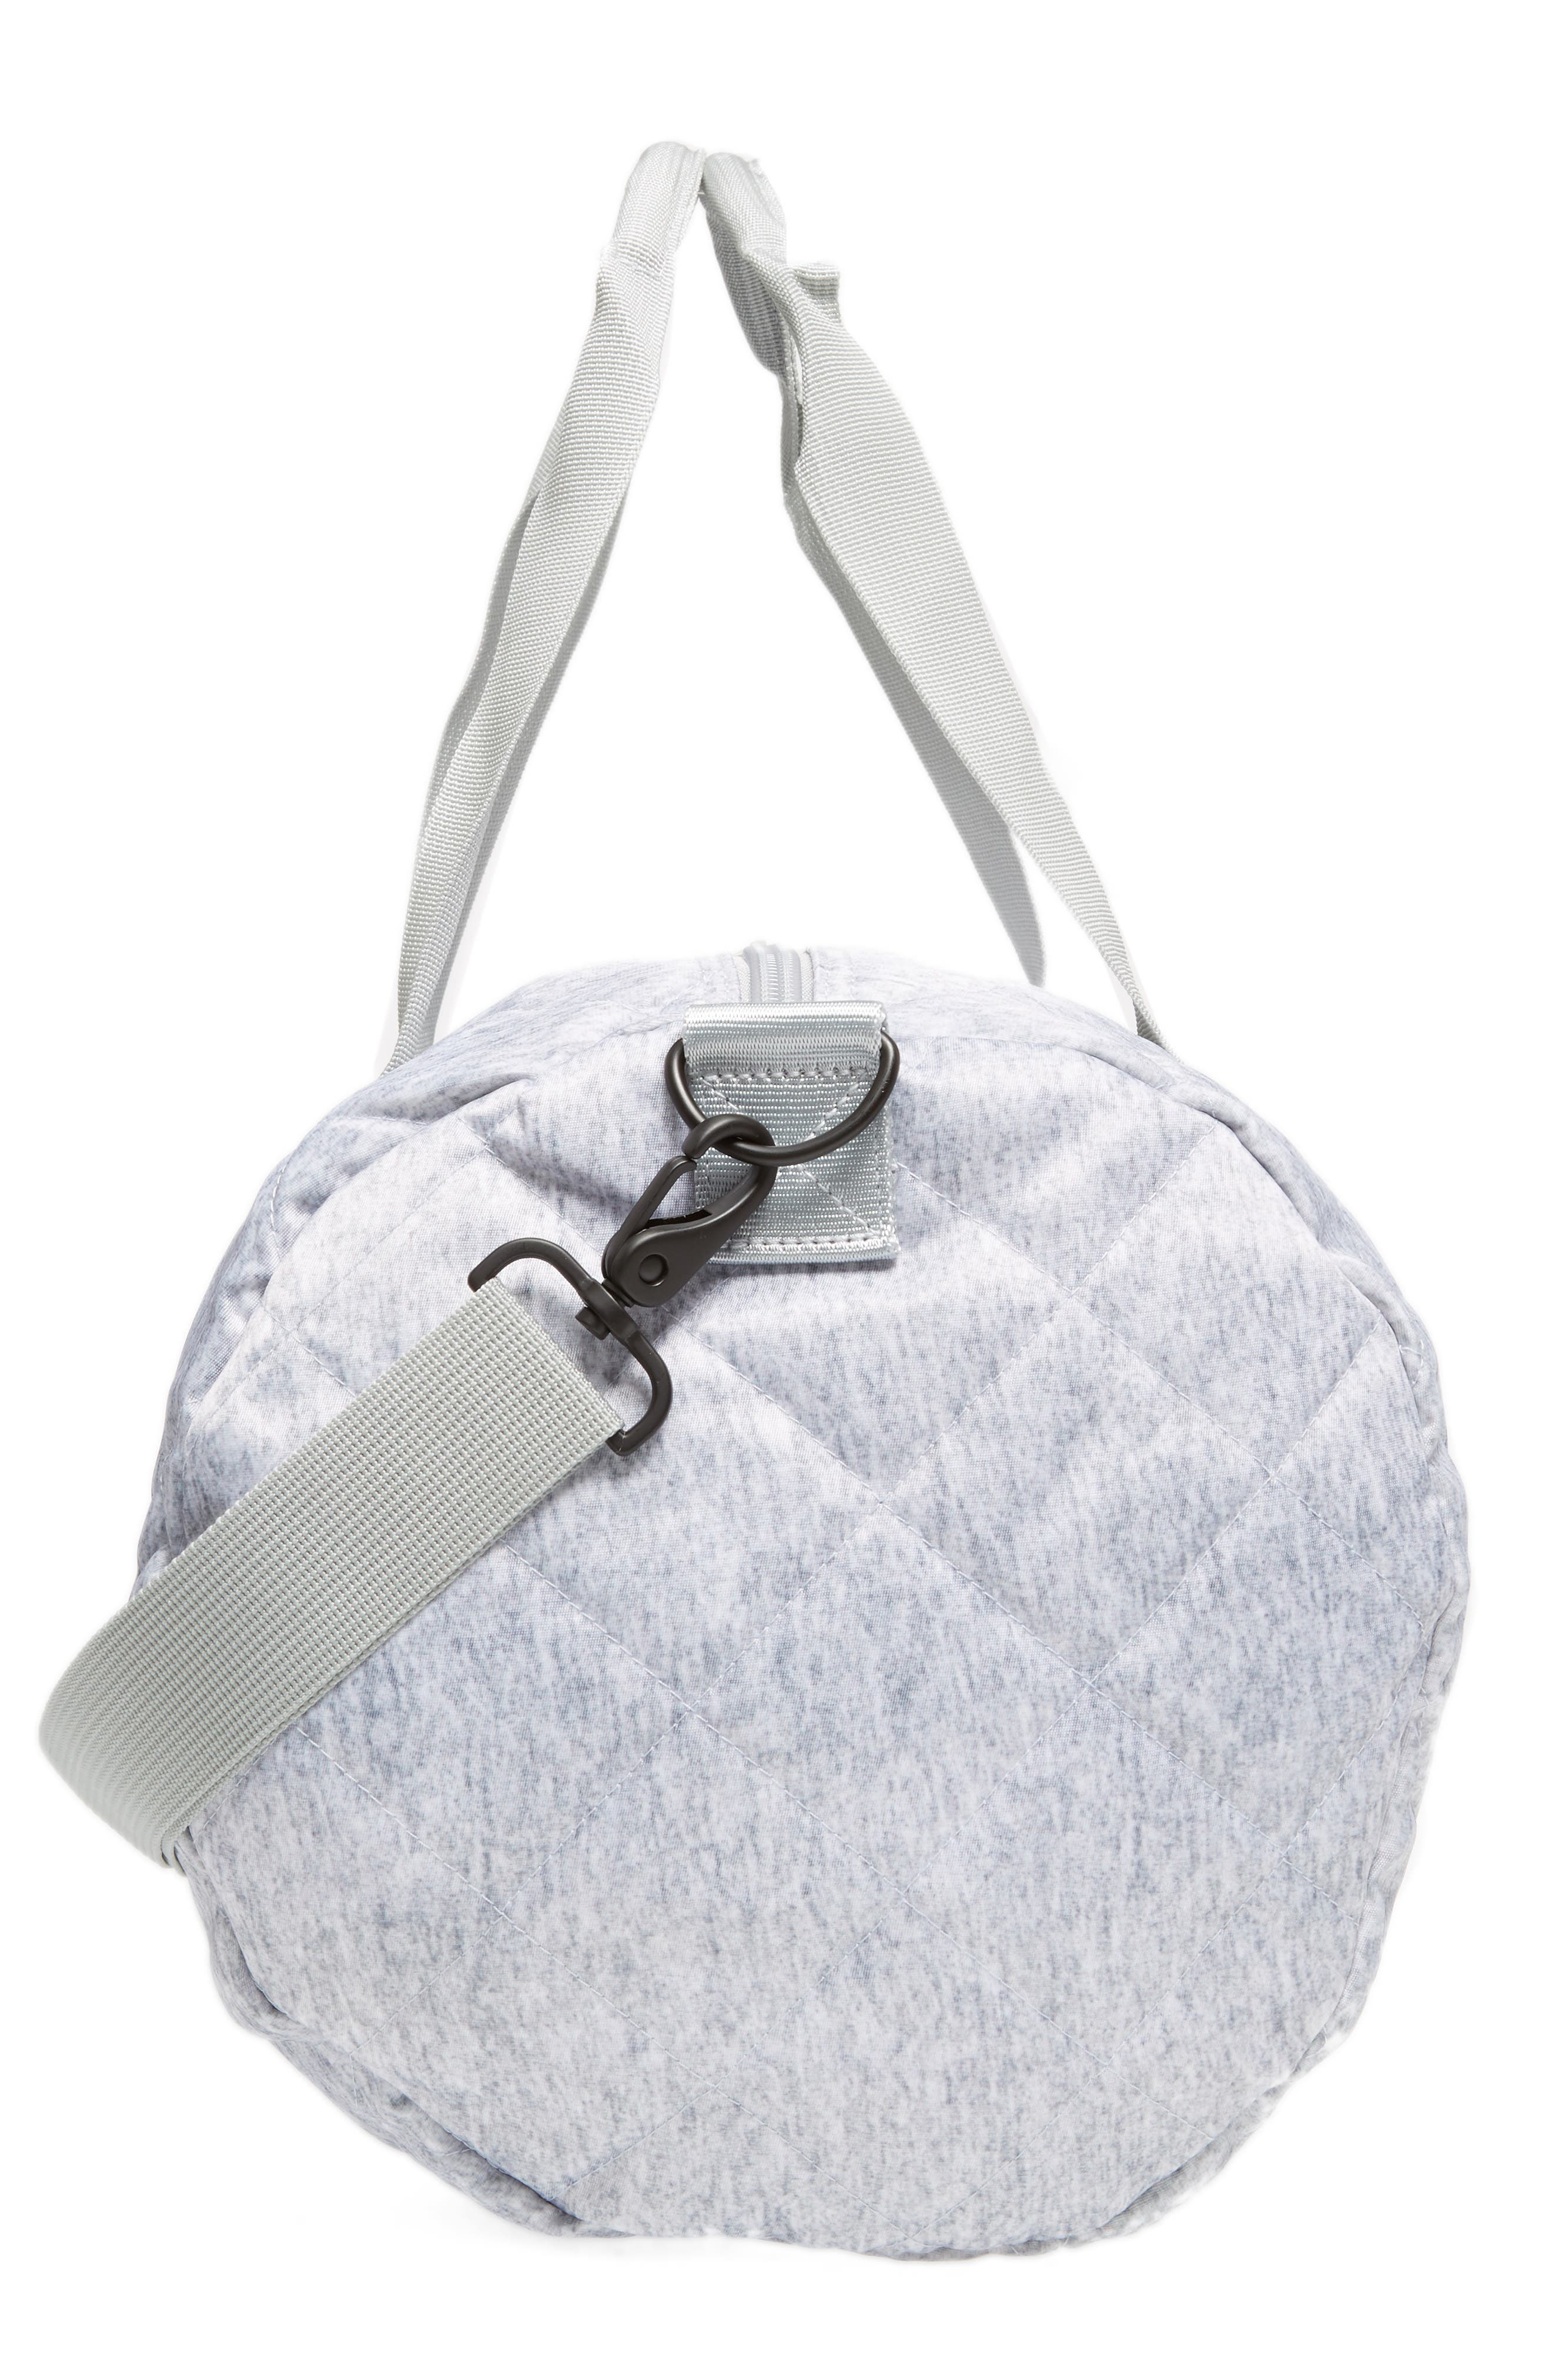 Roadie Small Duffel Bag,                             Alternate thumbnail 5, color,                             QUILTED GRAY NYLON